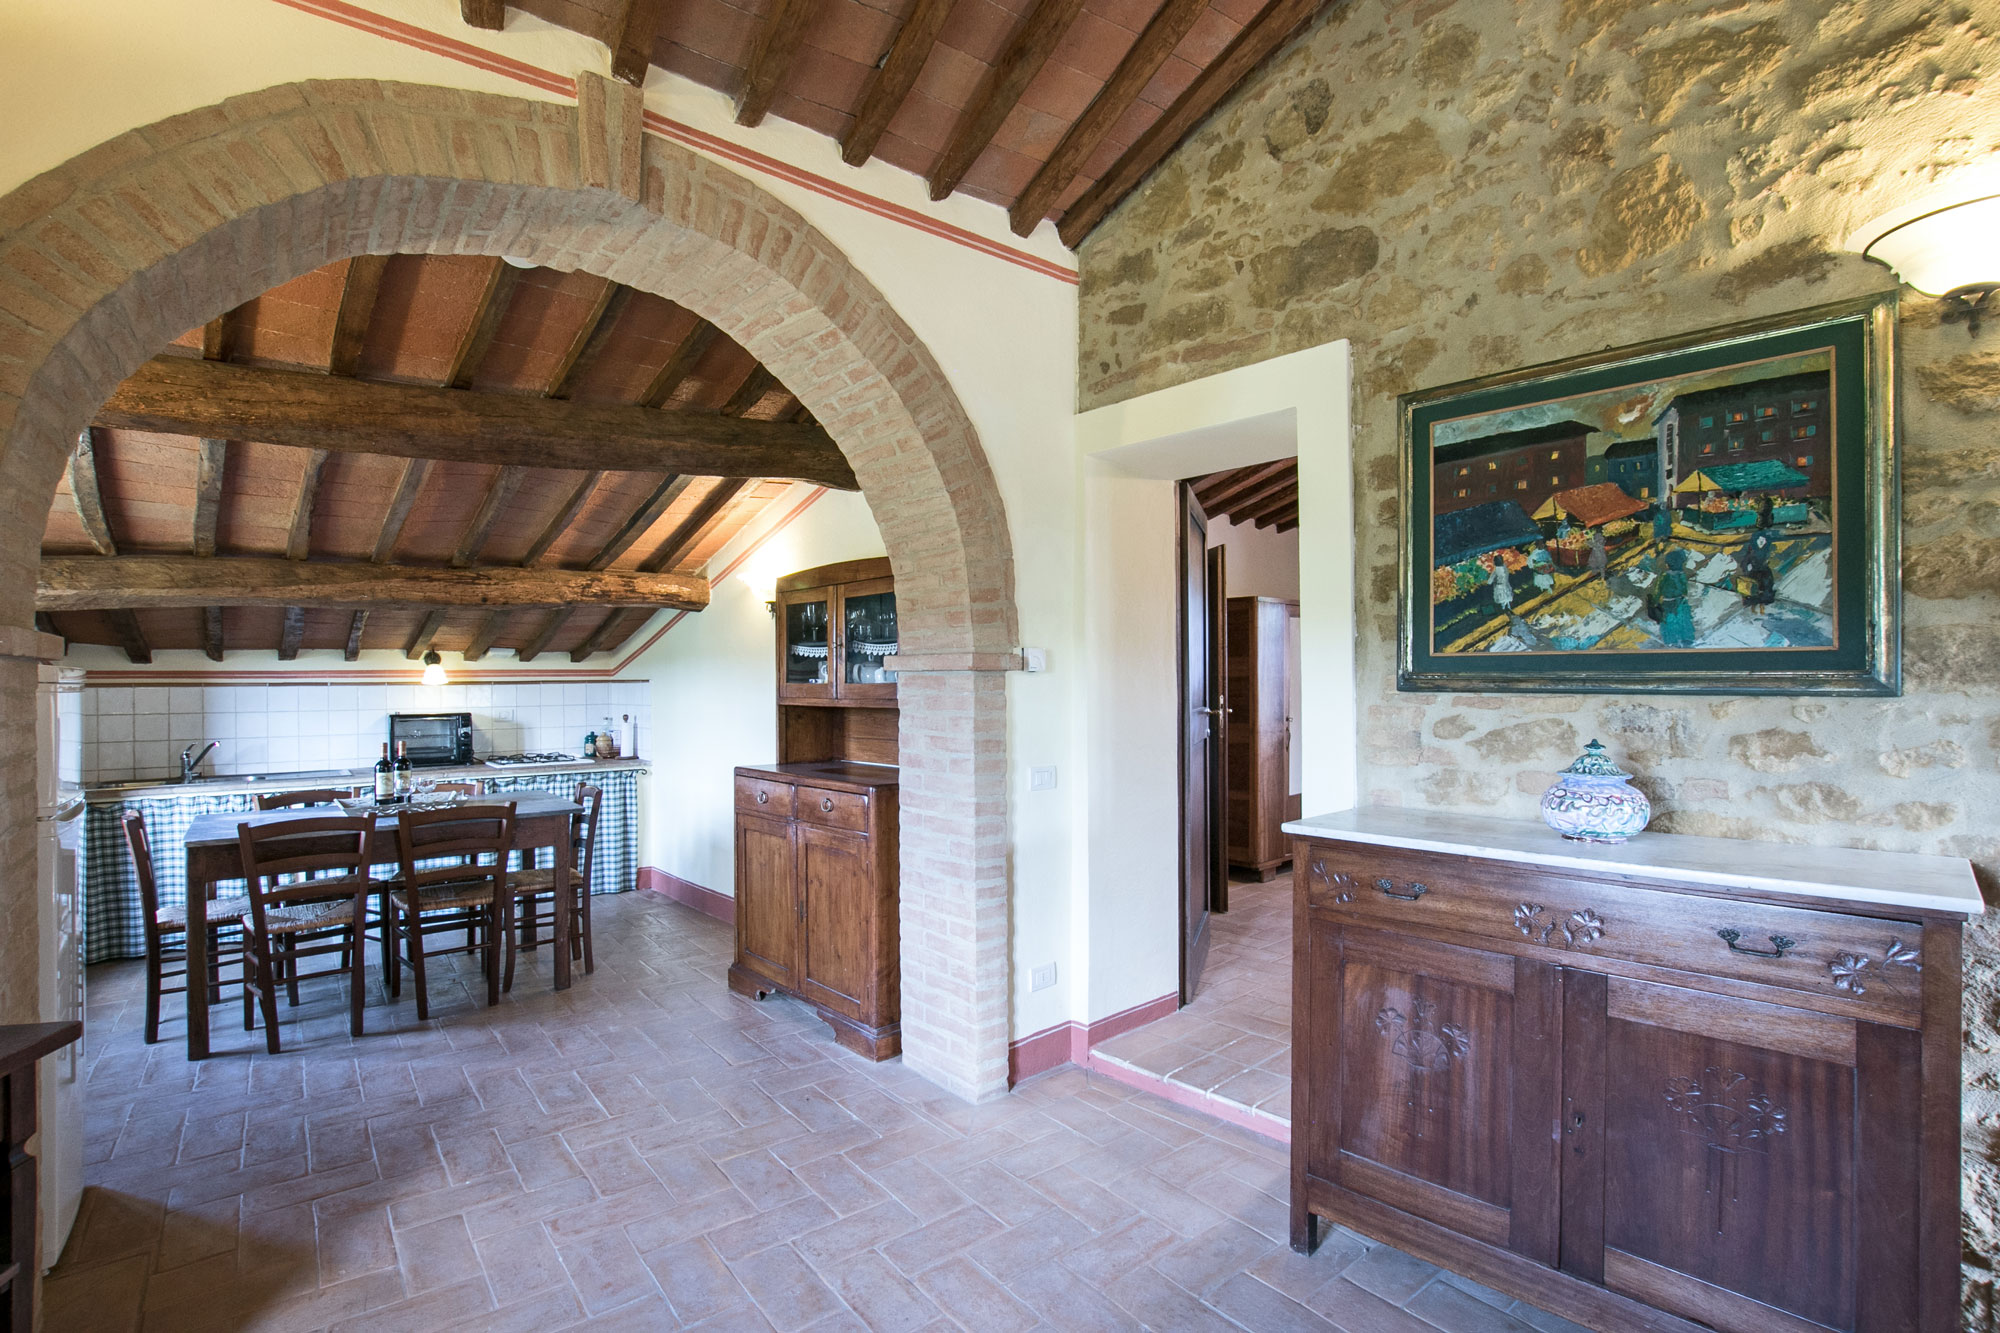 Farmhouse with pool for sale near Pienza and Montepulciano